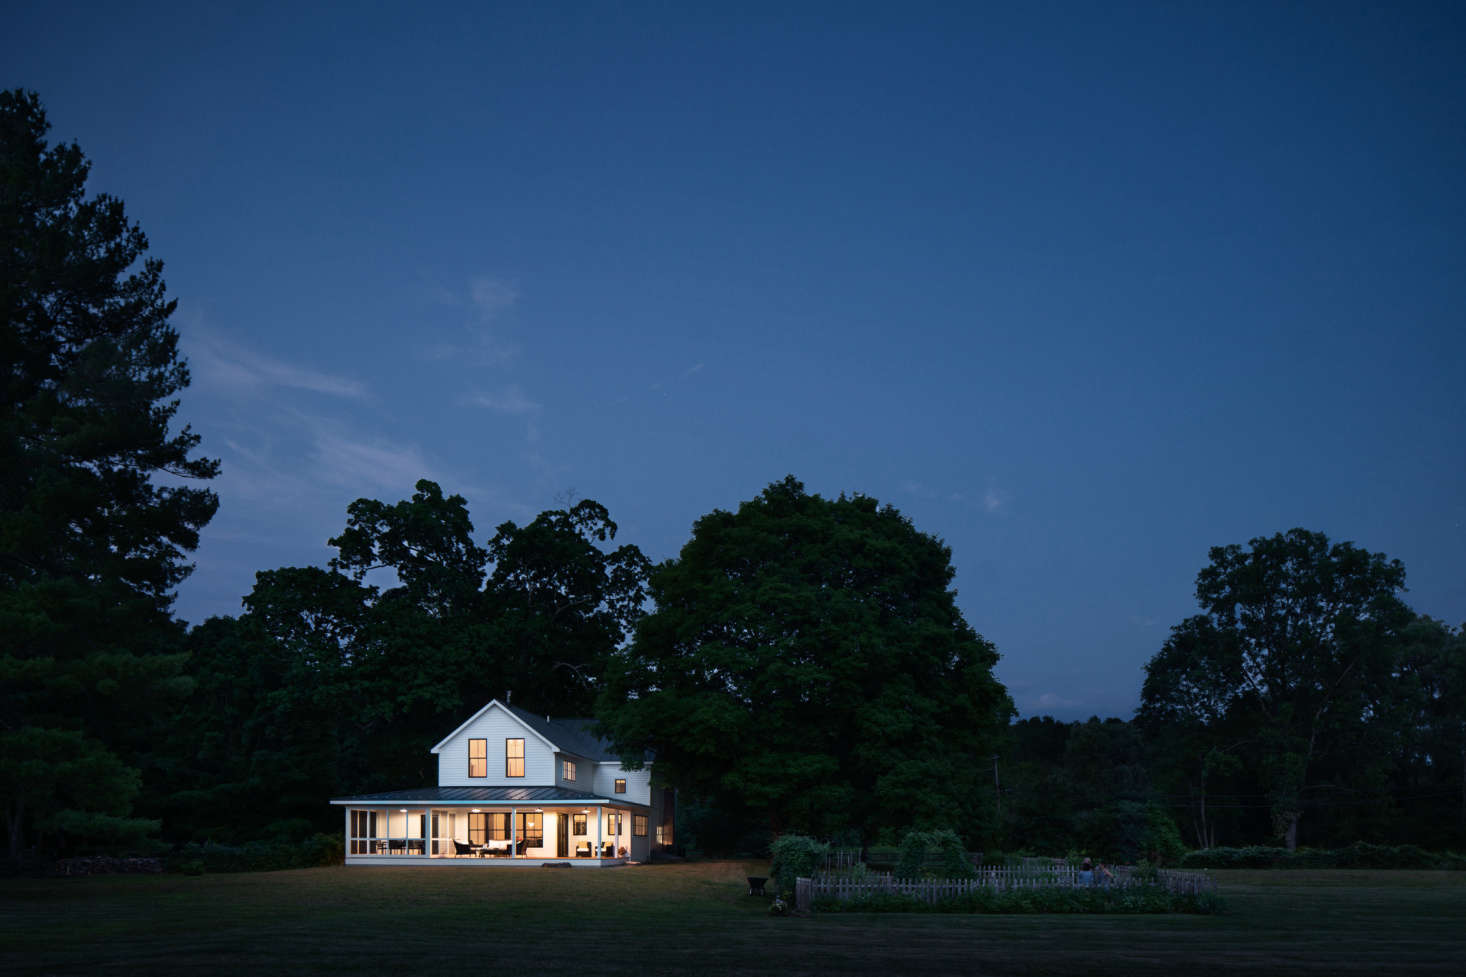 At twilight, the house looks like a Maxfield Parrish painting.